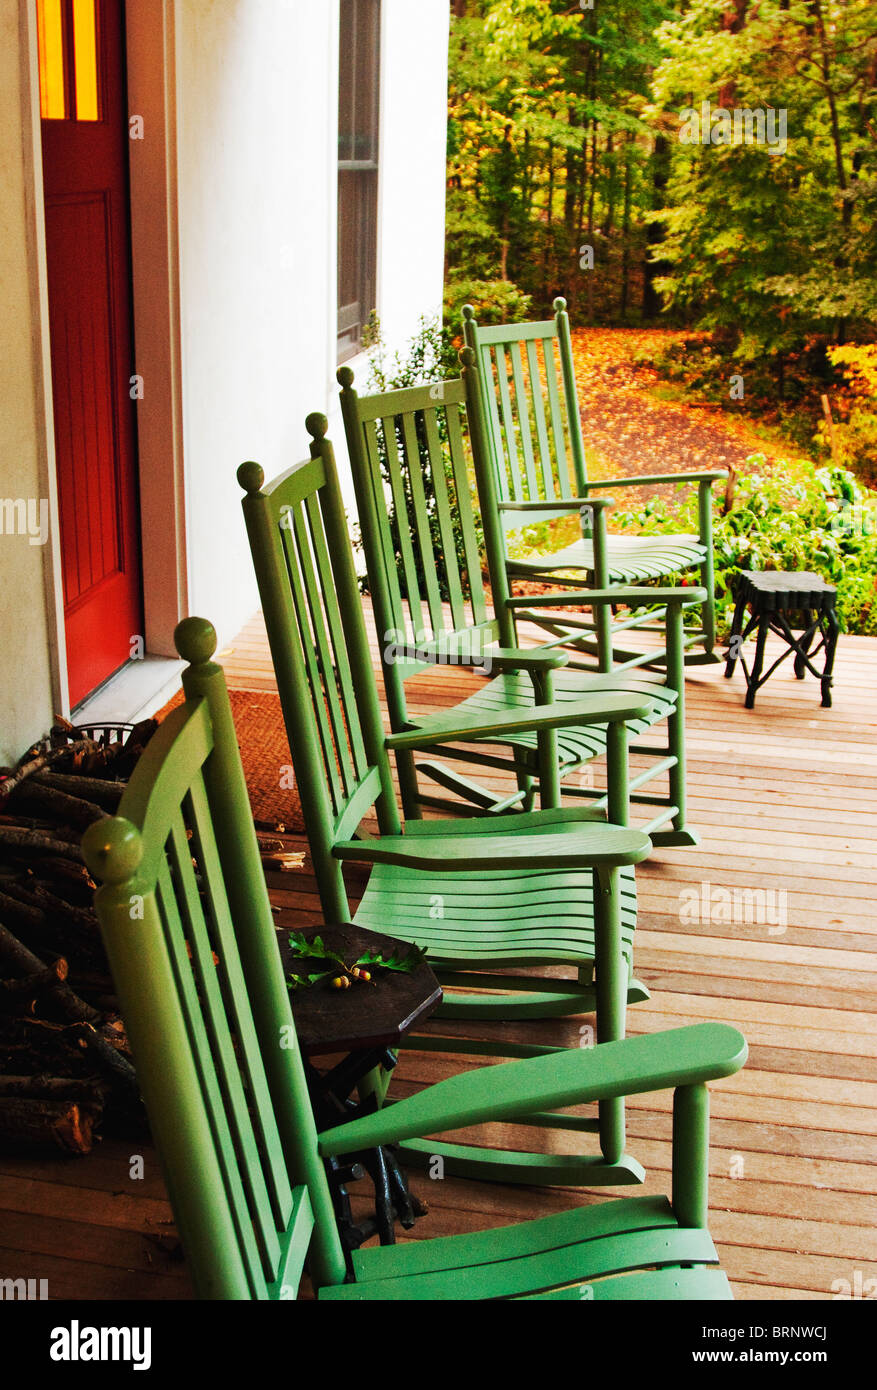 Green Rocking Chairs On Front Porch Of White Rural Farmhouse   Stock Image